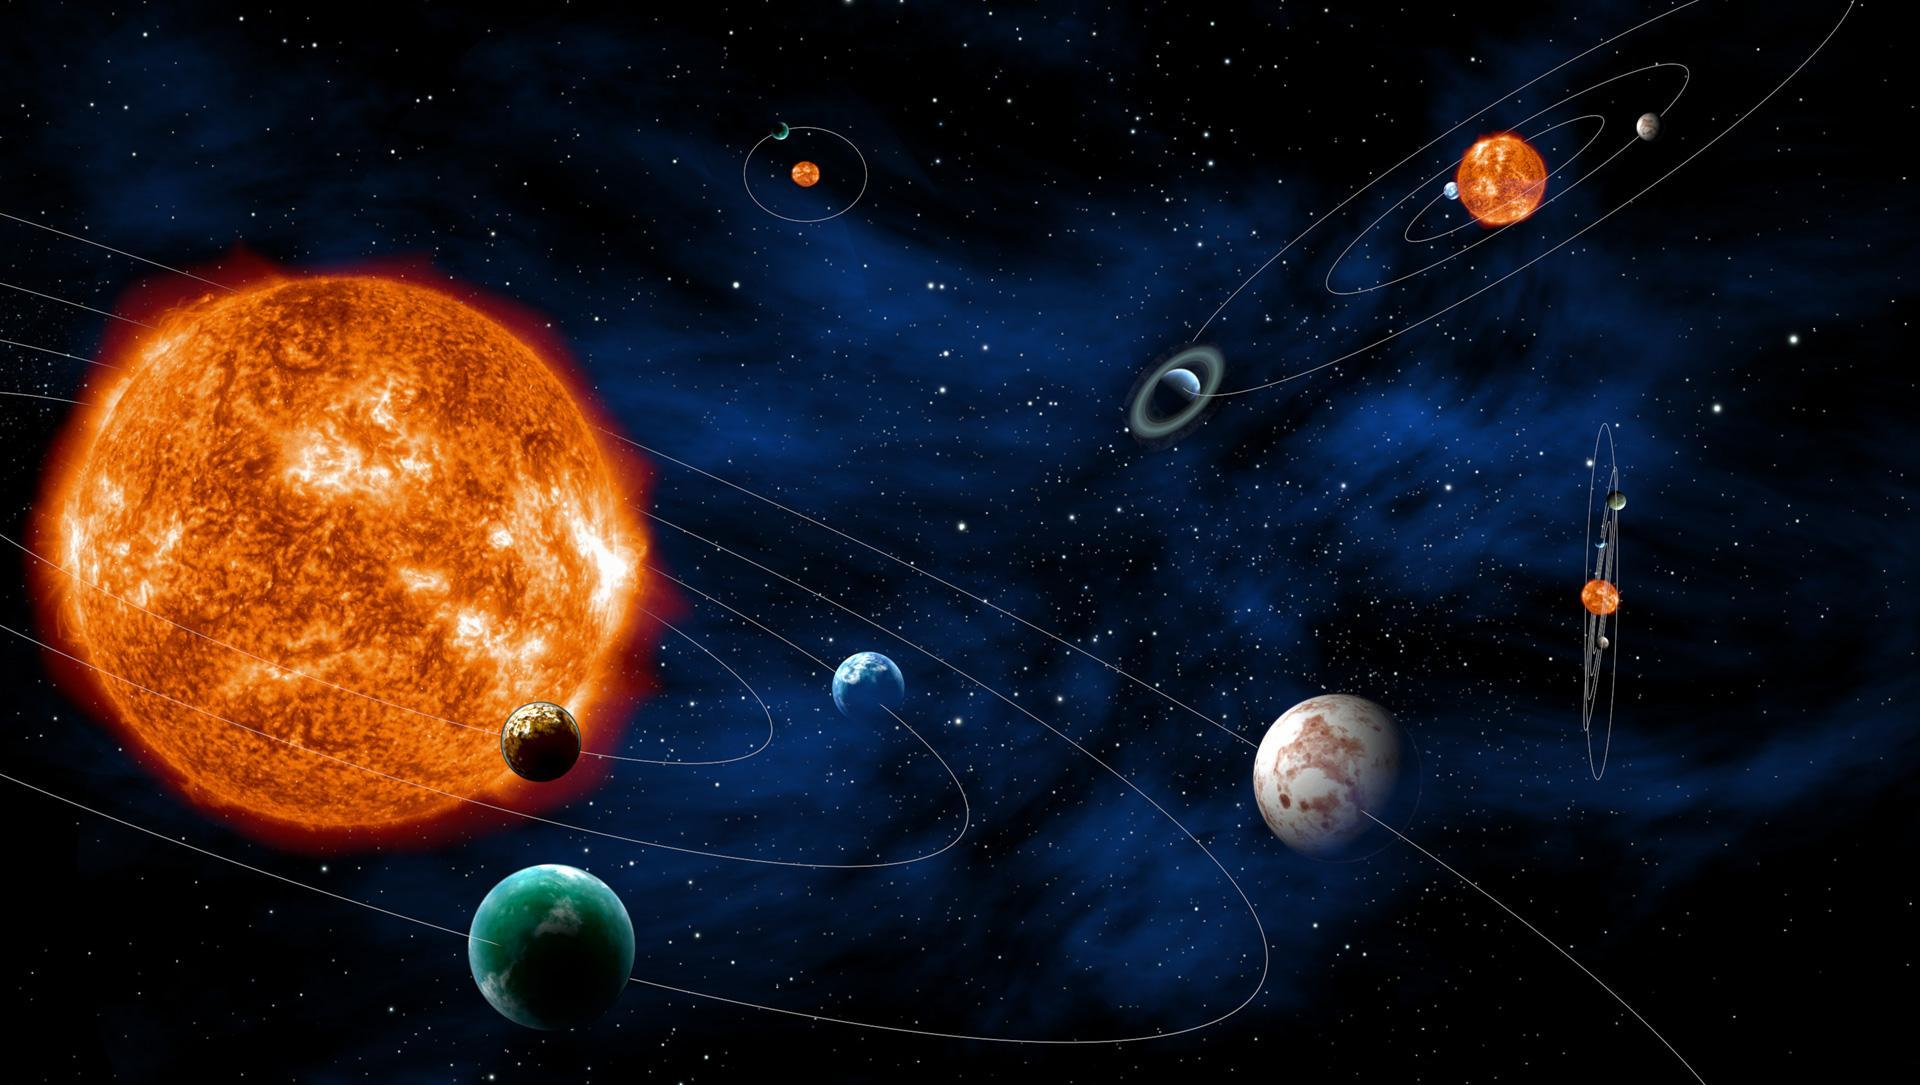 Graphical representation of the Solar System and exoplanetary systems